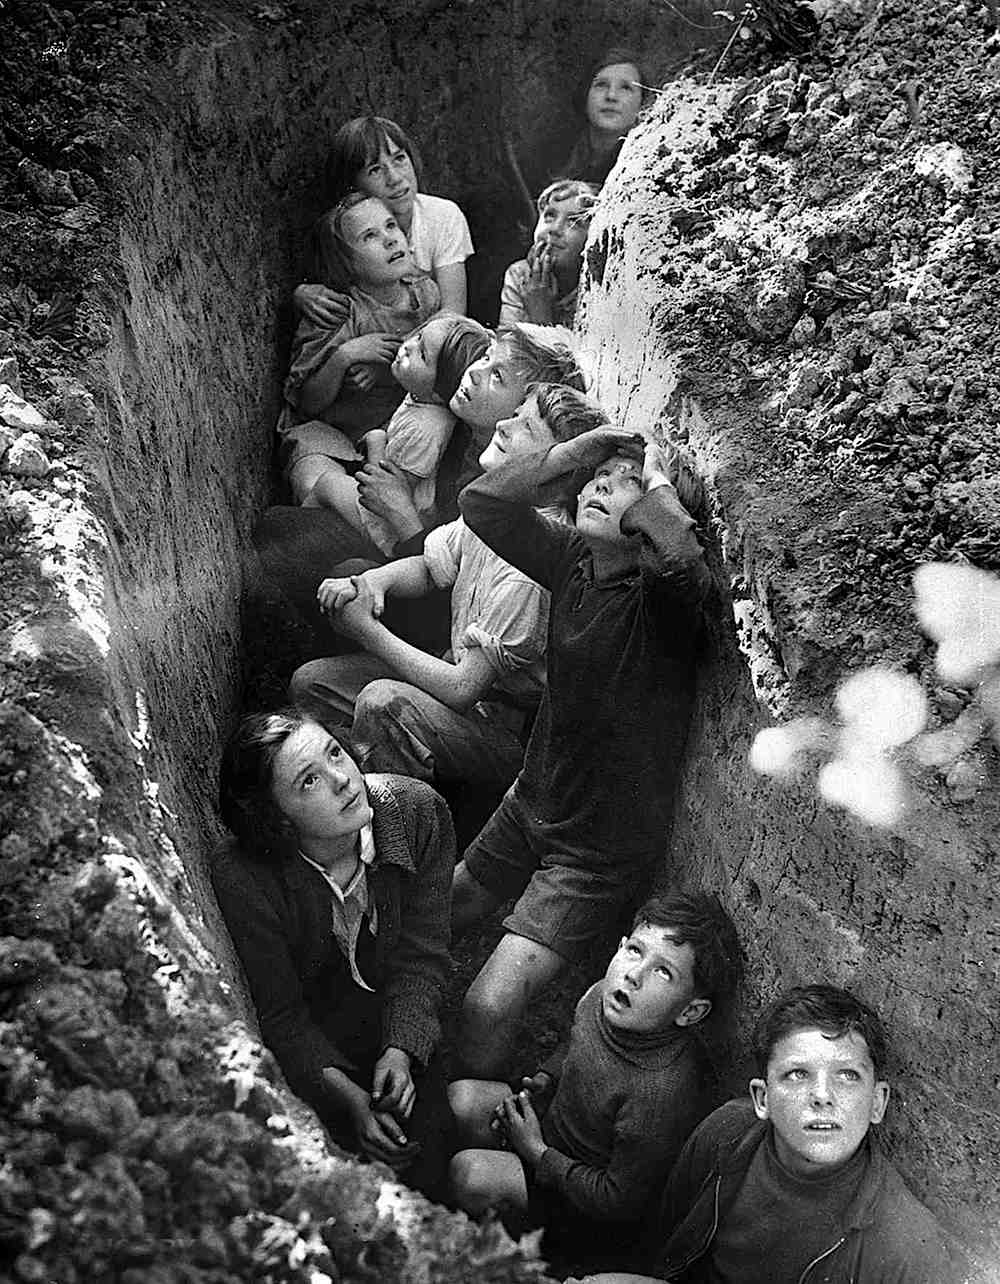 children in a trench during the London Blitz, a photograph